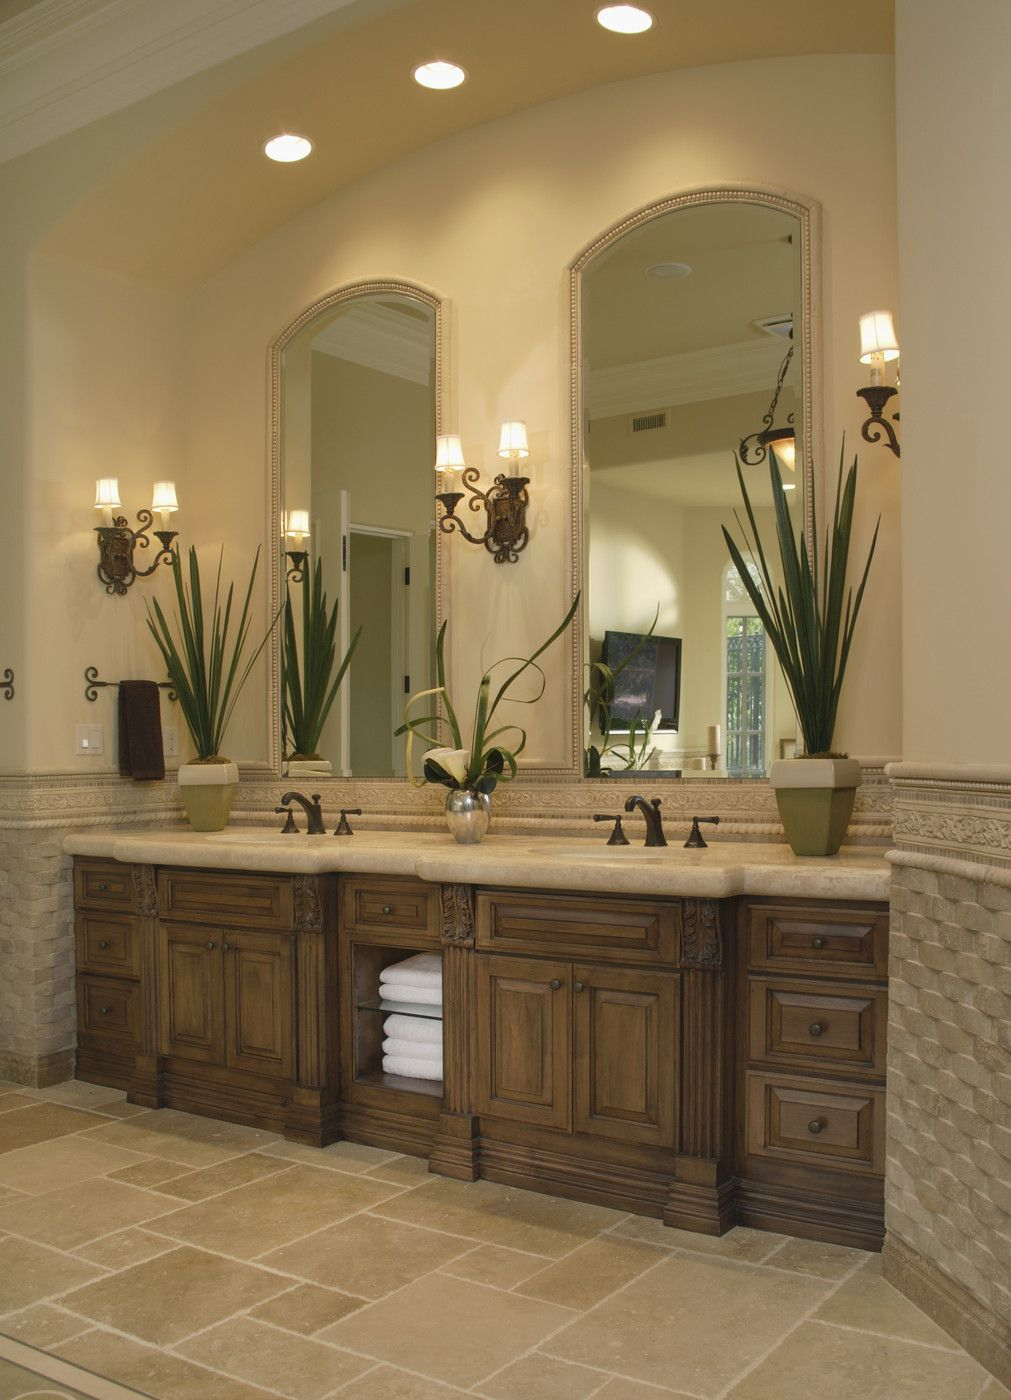 Rise and shine bathroom vanity lighting tips light up the area evenly aloadofball Image collections